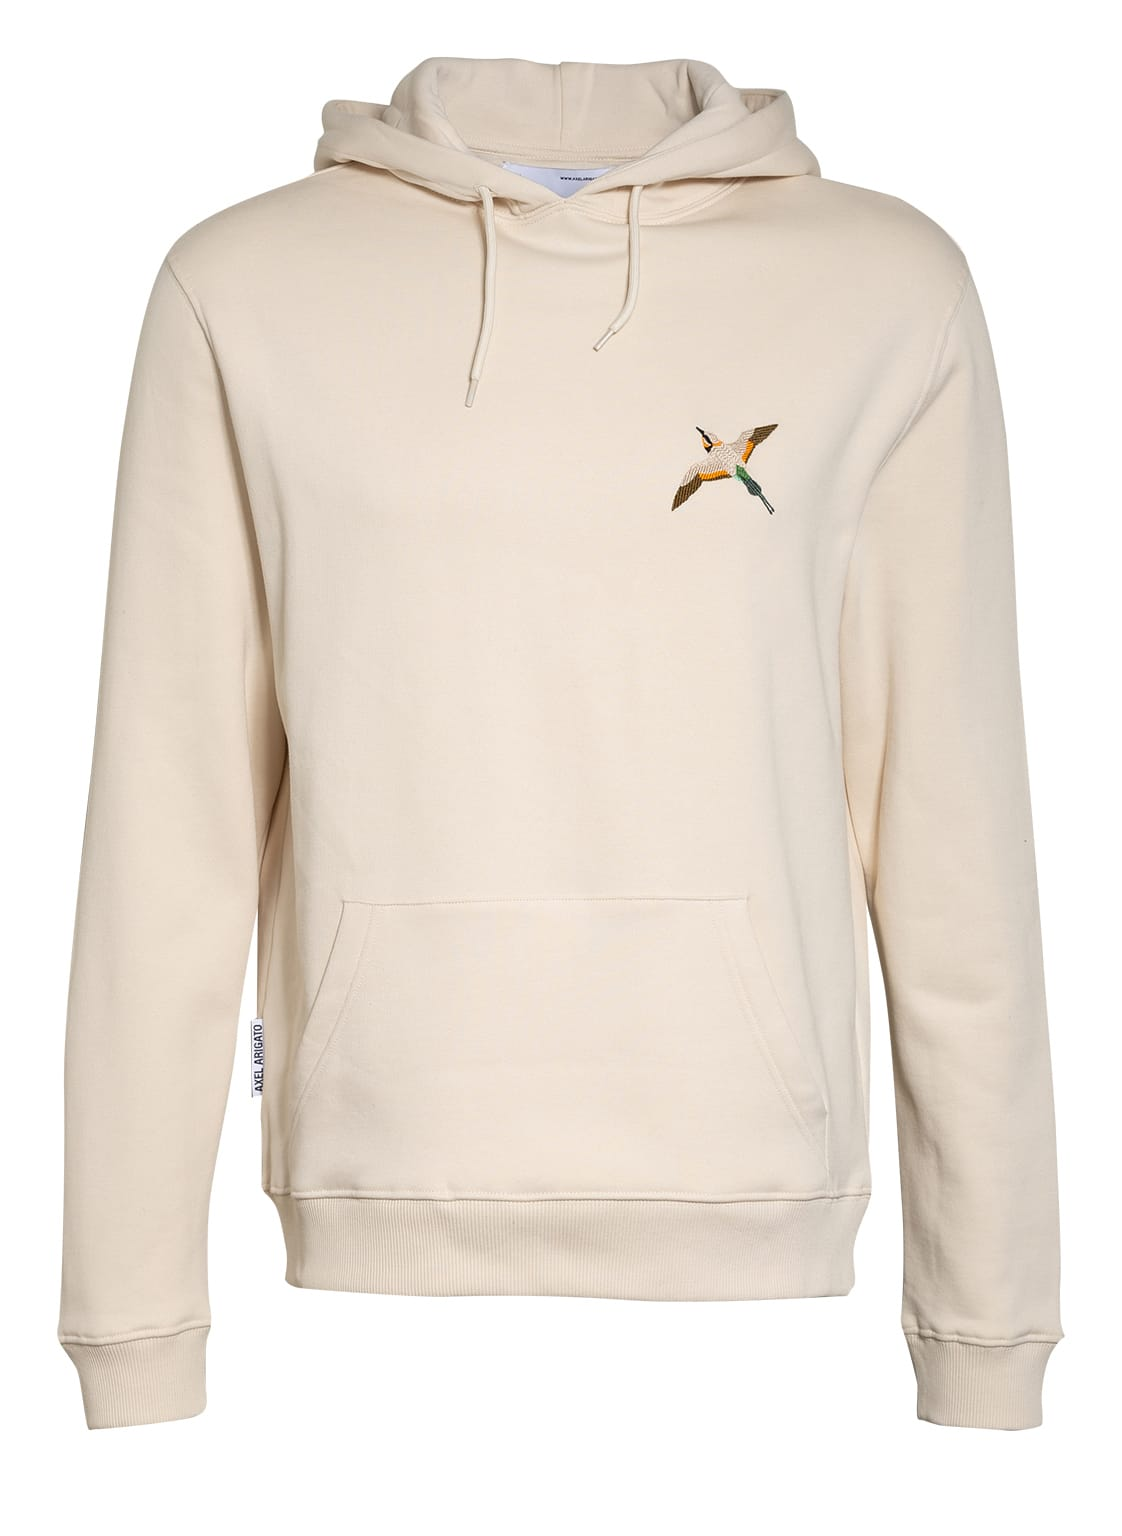 Image of Axel Arigato Hoodie Single Tori Bird beige